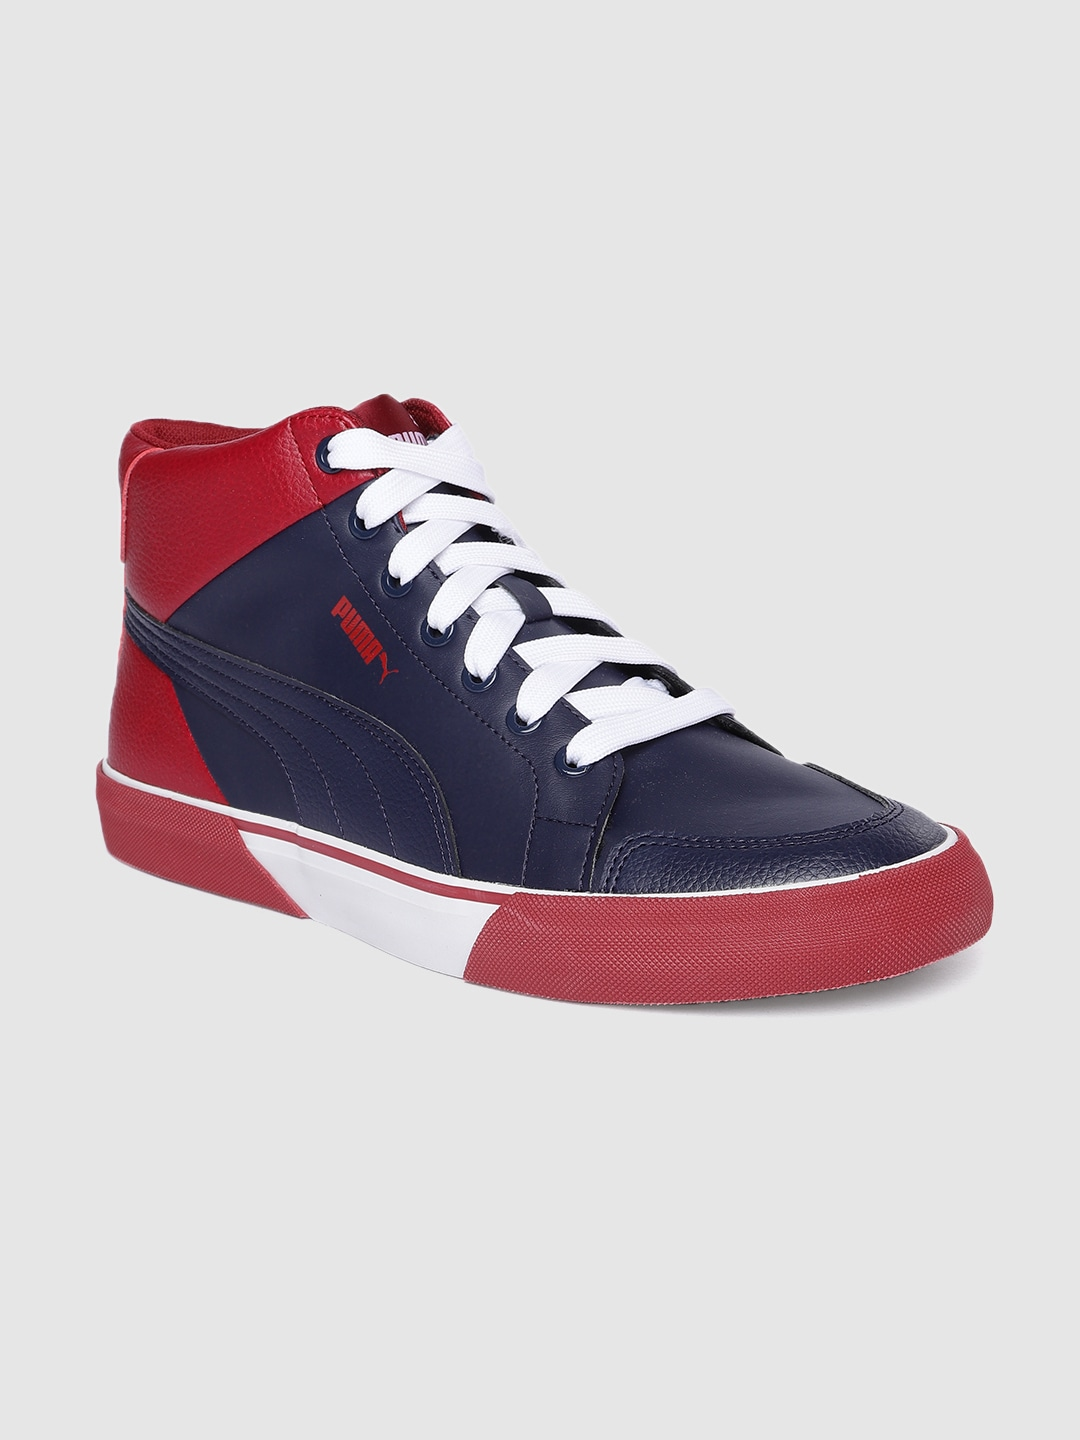 Navy Blue & Red Colourblocked Crush IDP Mid-Top Sneakers